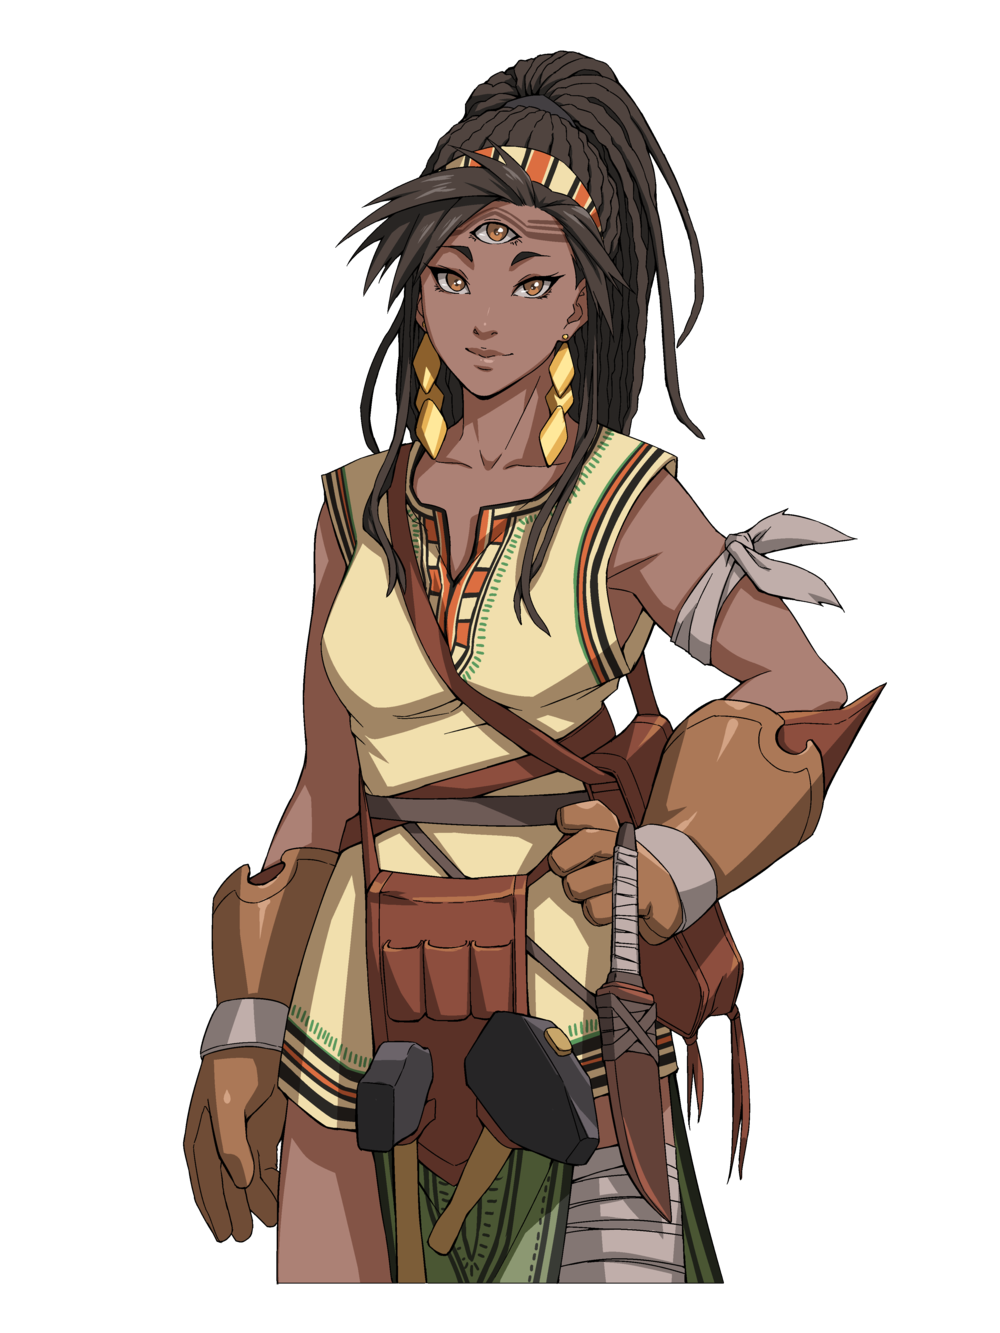 A three eyed blacksmith from a far away land. She travels to the Empire to discover new materials as well as bring back information for her people. Her mystical eye make her an extraordinary blacksmith.